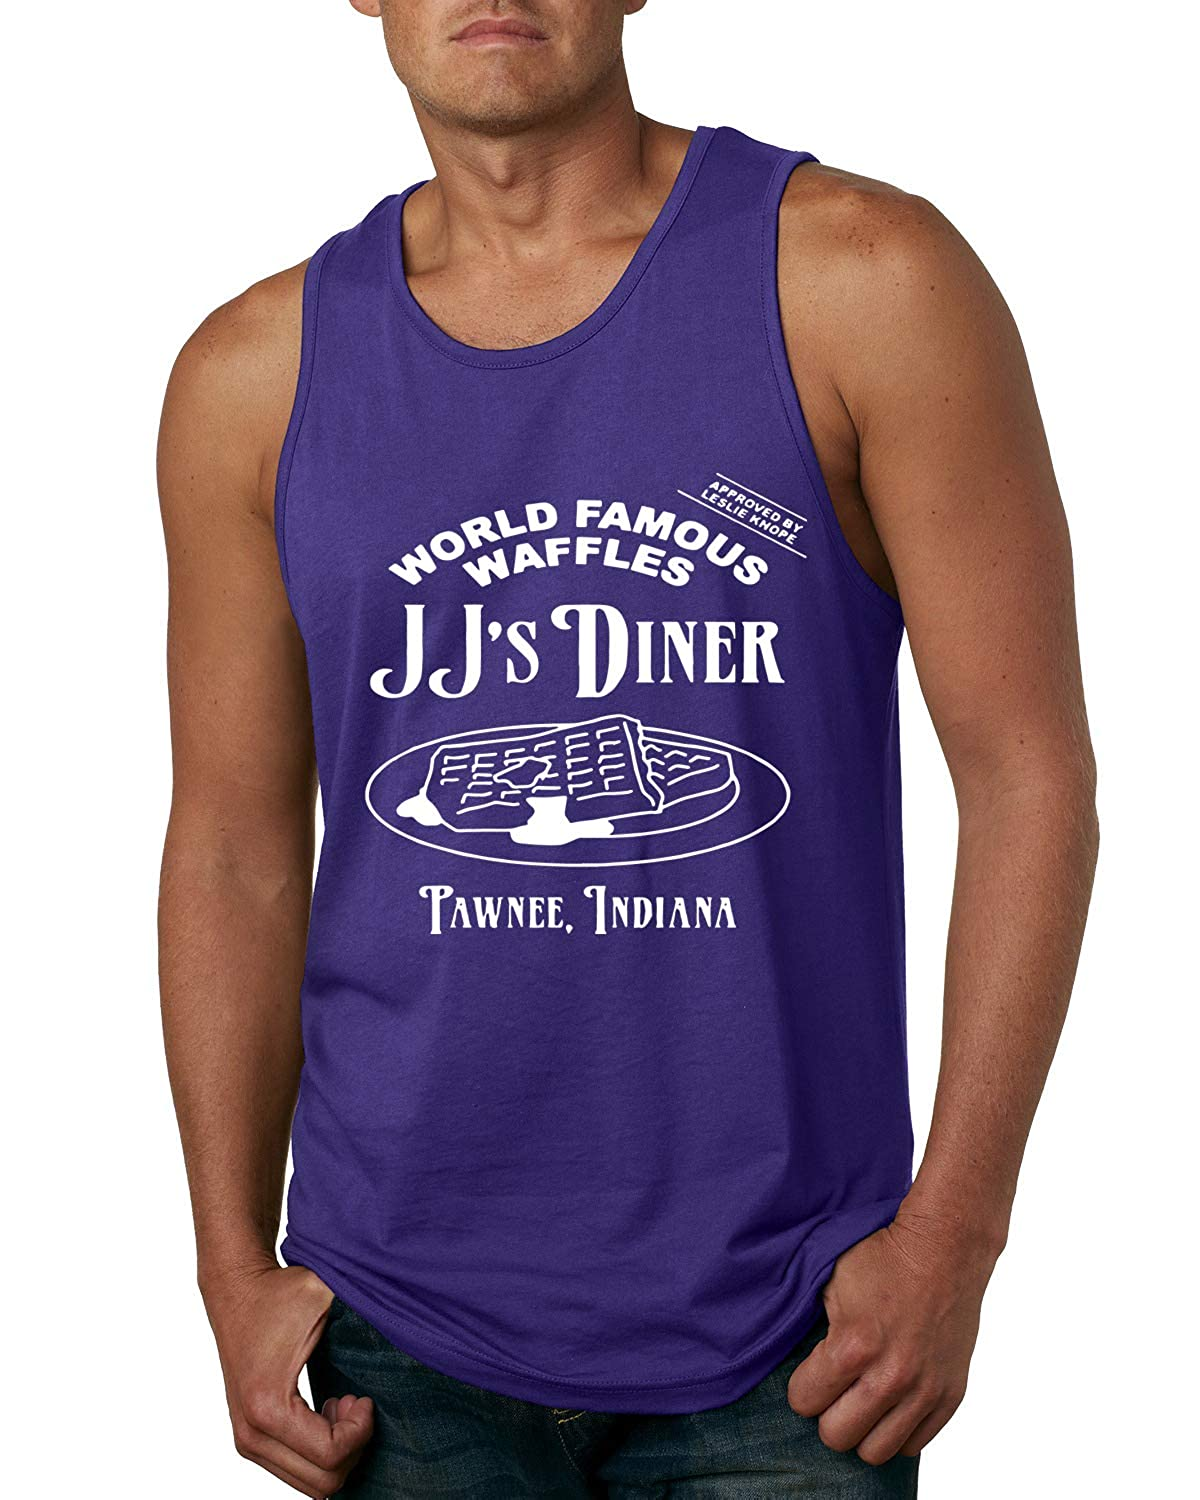 Mens Pop Culture Graphic Tank Top JJs Diner Indiana World Famous Waffles by Leslie